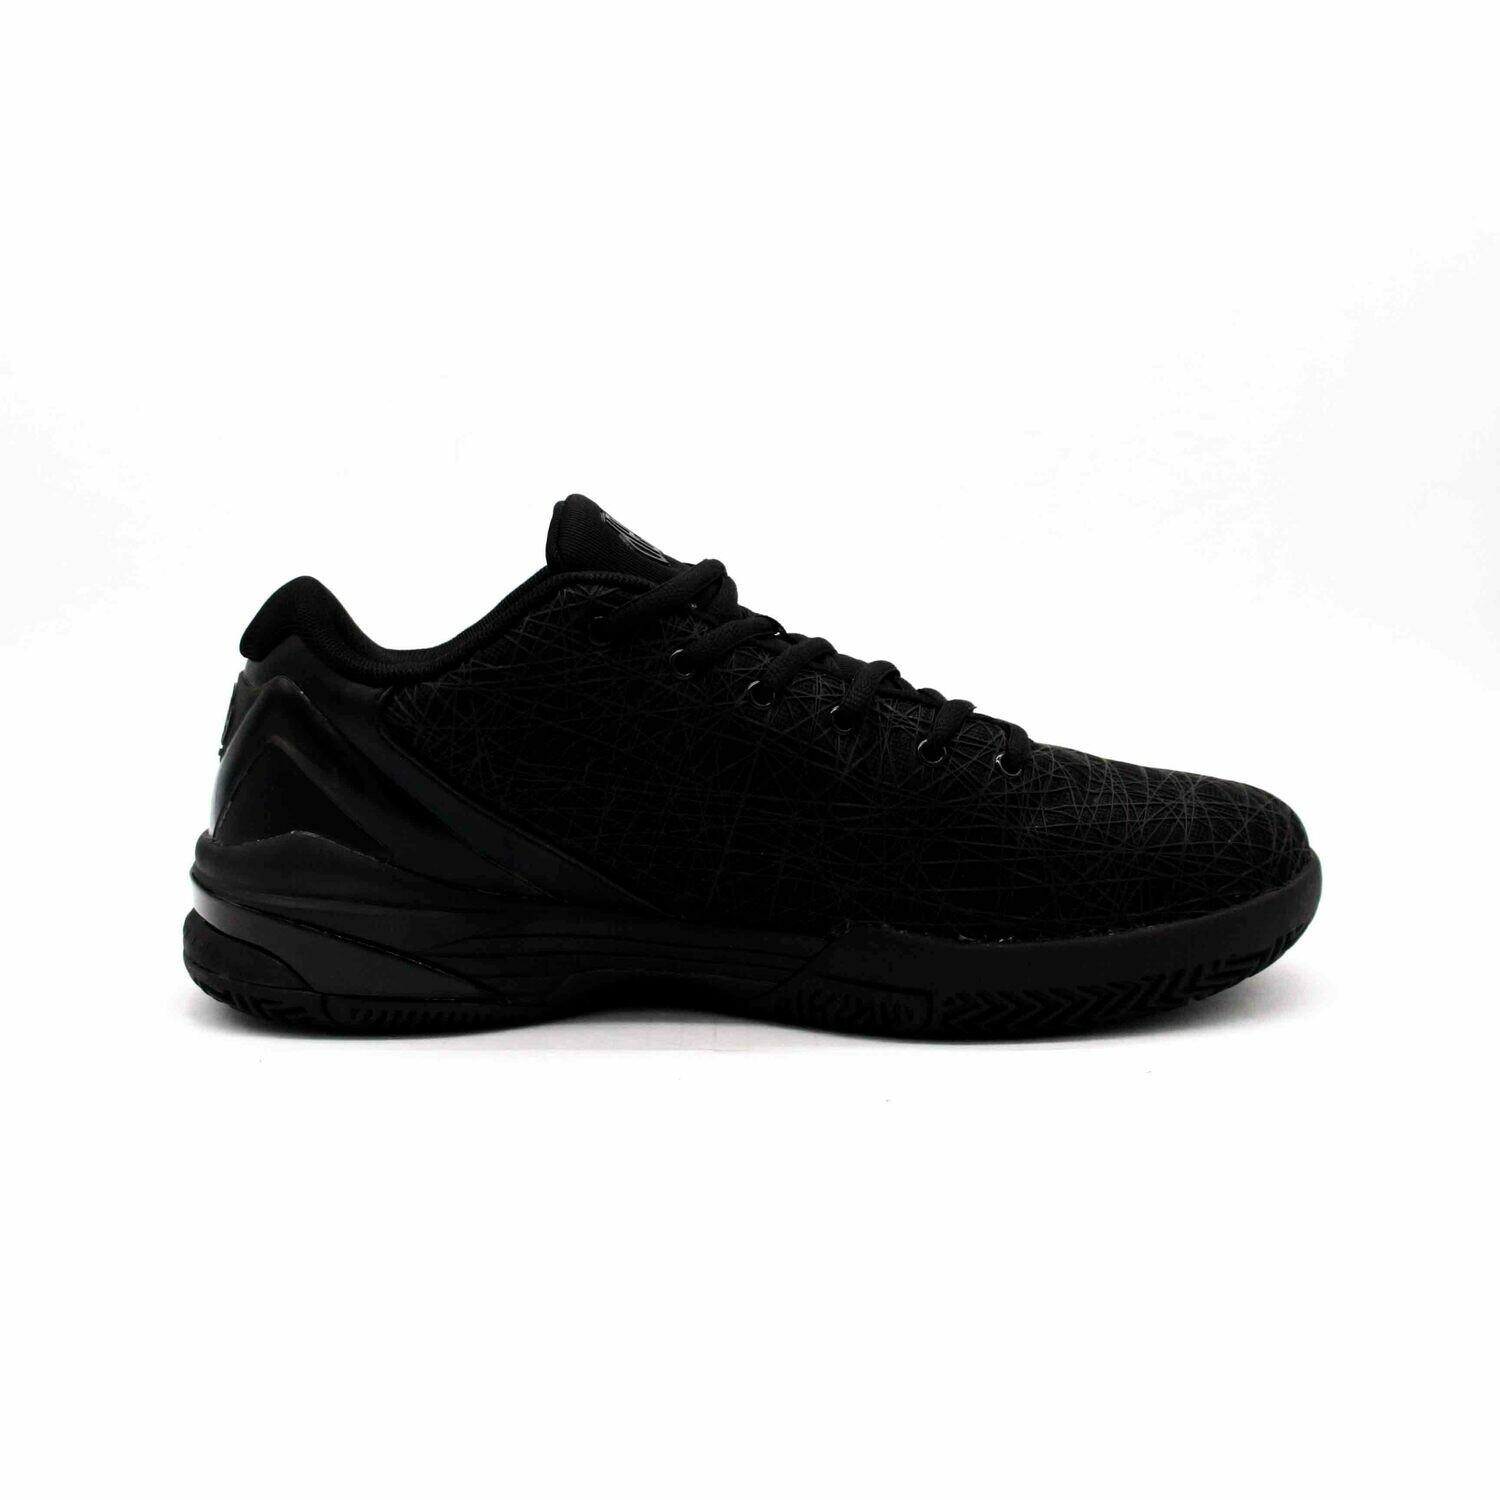 Kids' Basketball Shoes Delly Black